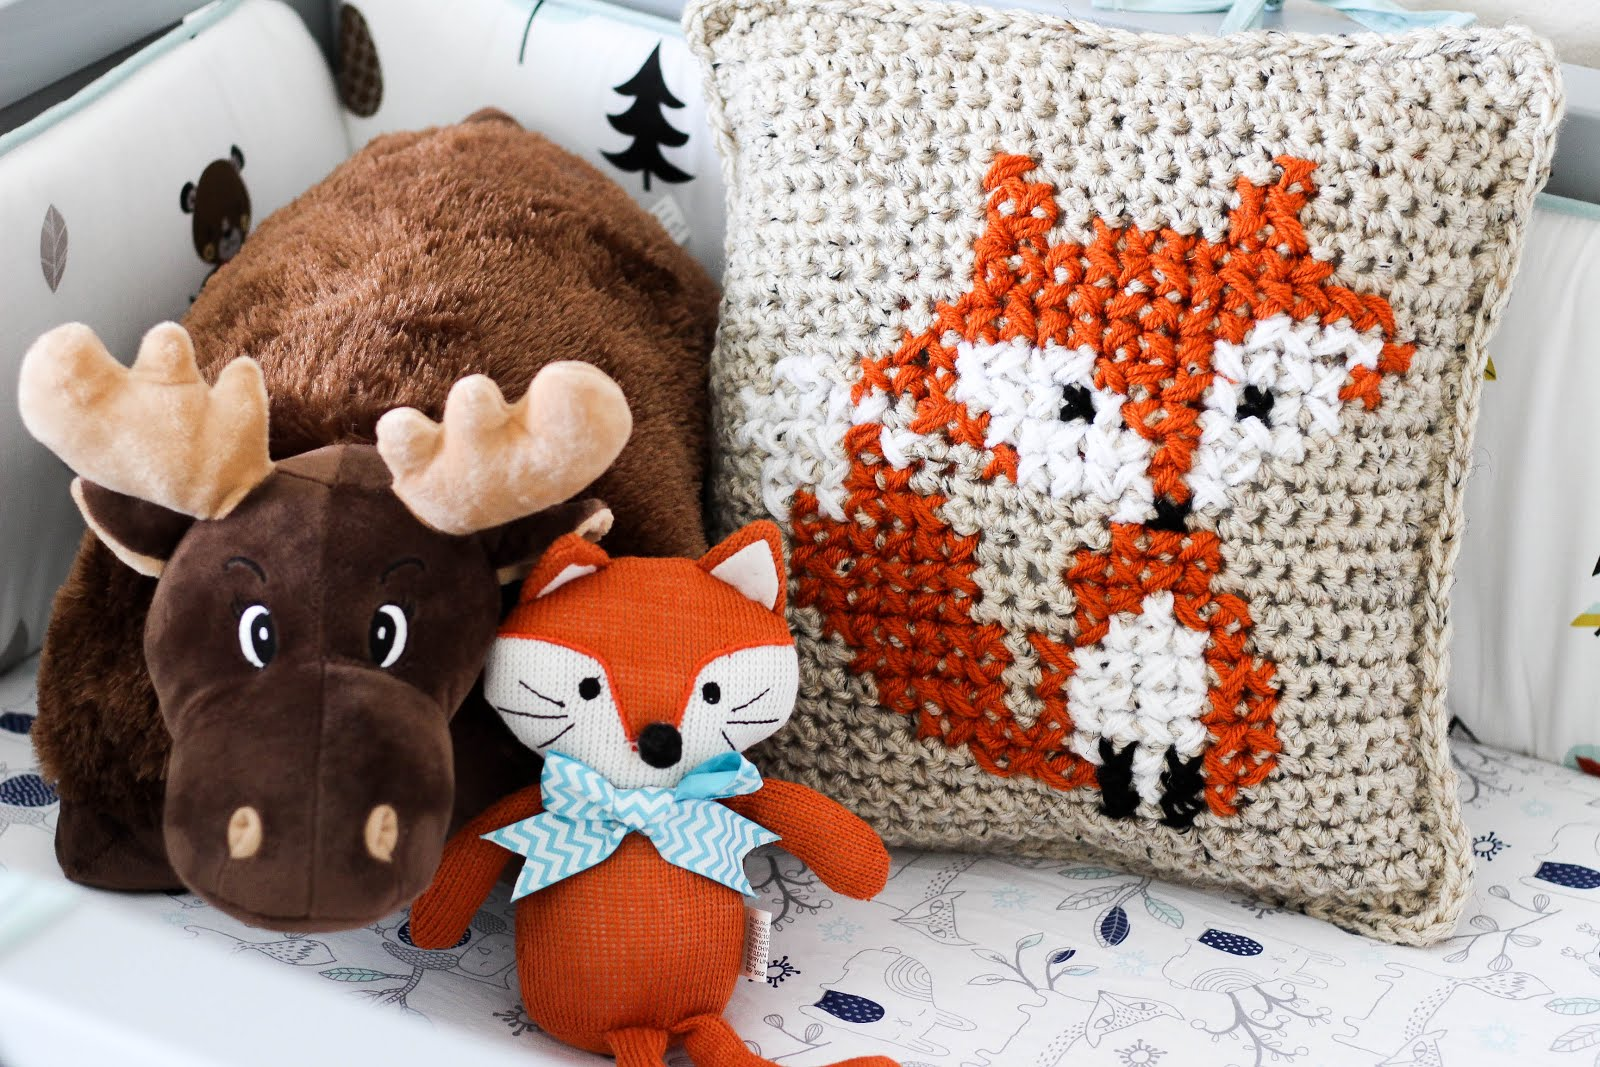 cushion lambswool product scotland pillow by in camel fox donna knitted wilson